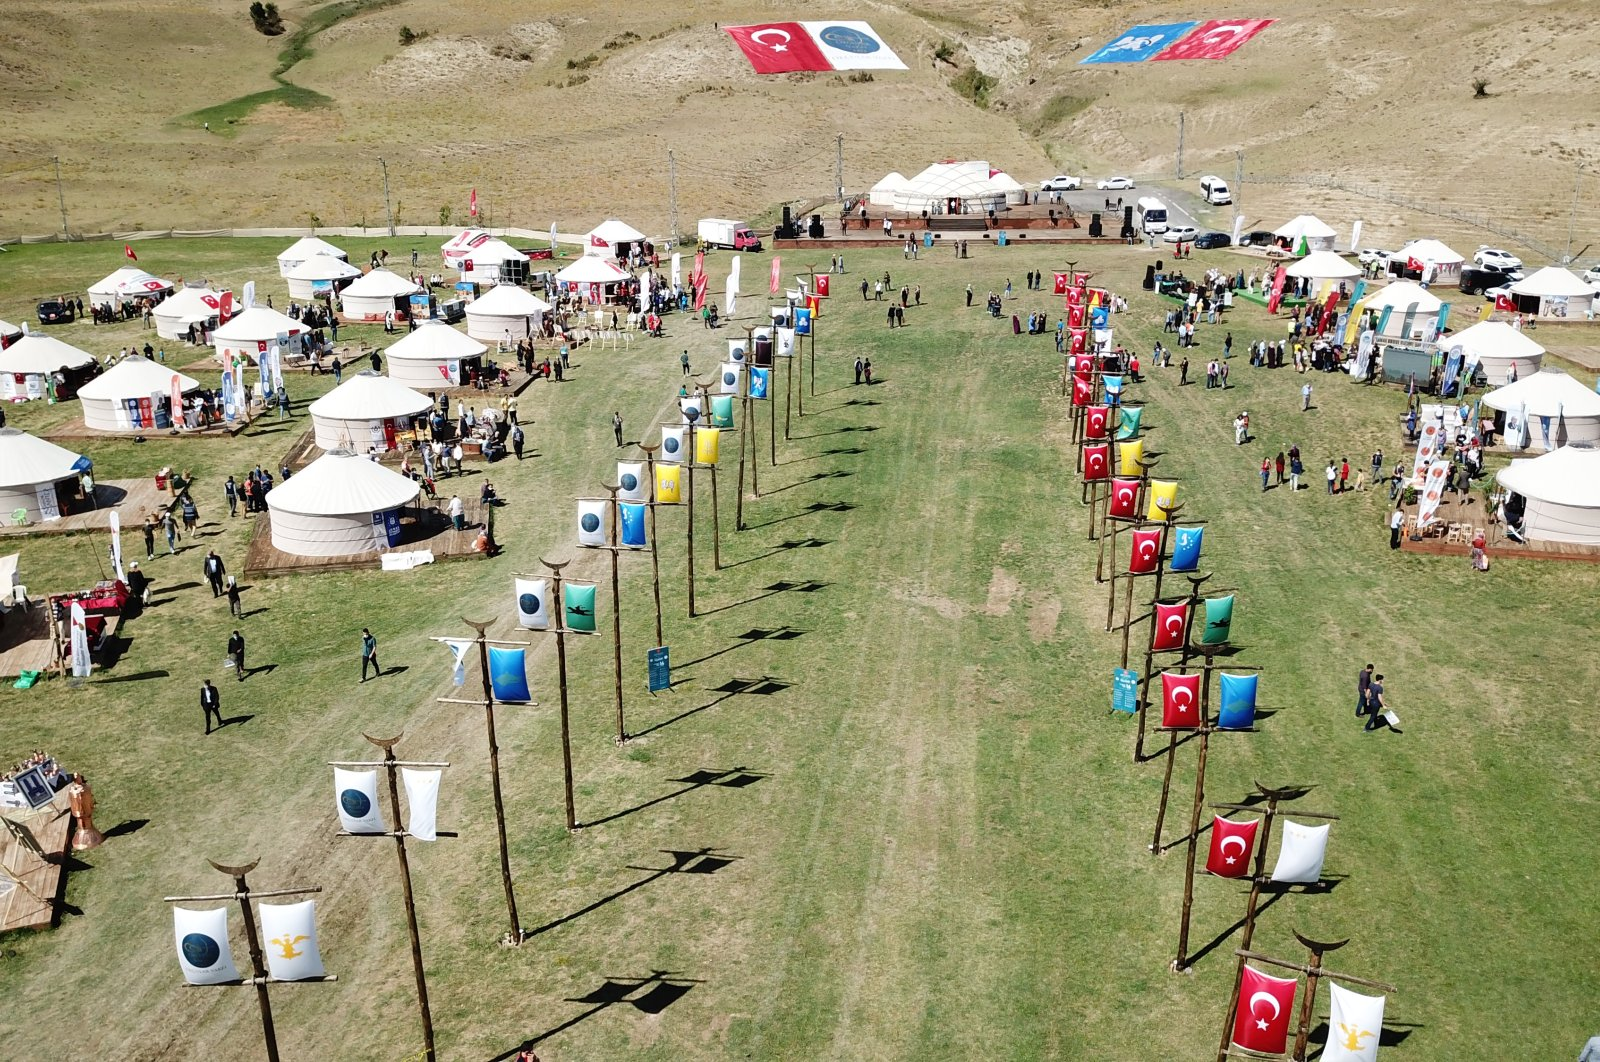 A view of yurts set up in Ahlat district where Sultan Alp Arslan camped before the battle, in Bitlis, eastern Turkey, Aug. 23, 2020. (AA Photo)